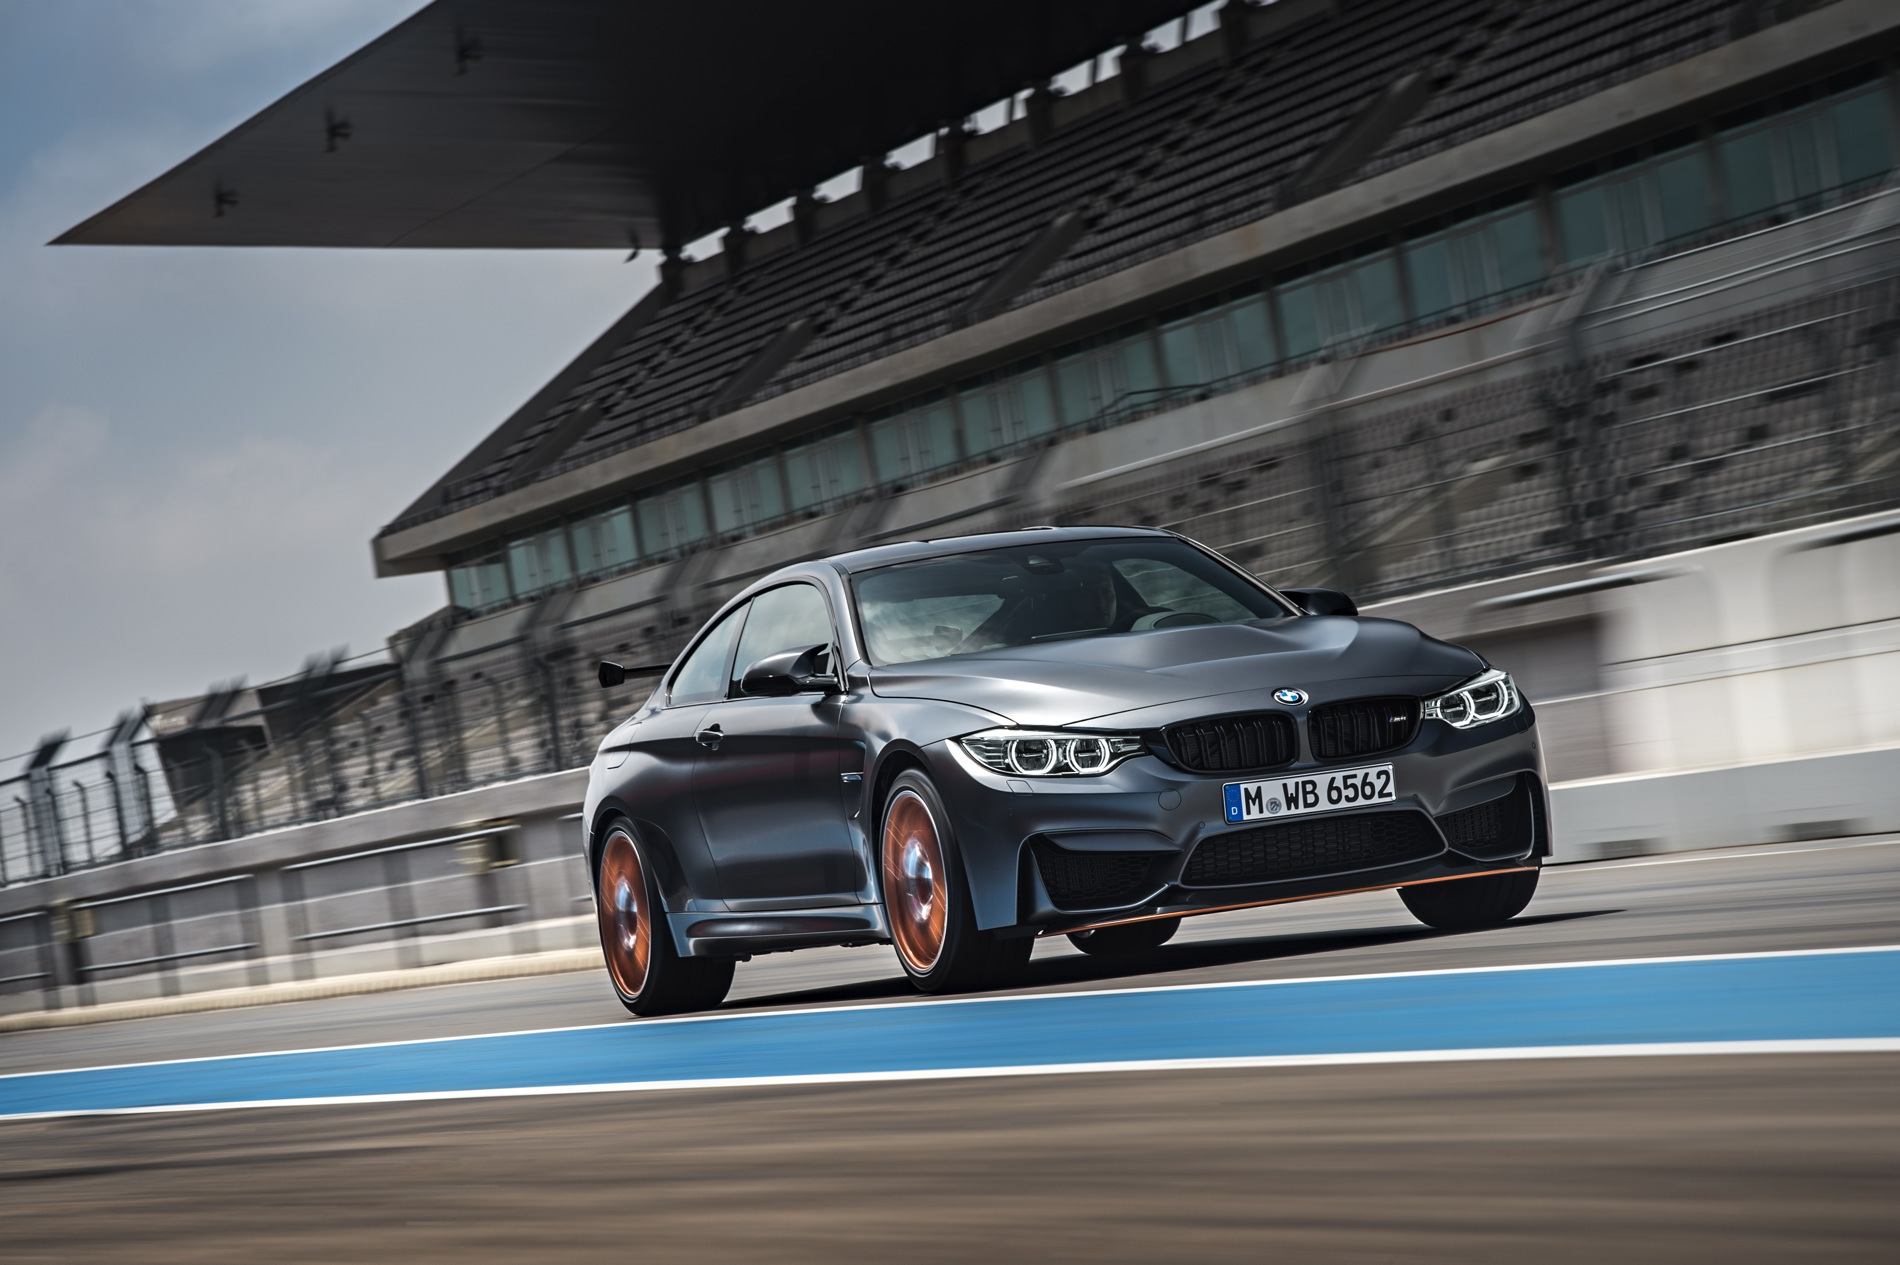 2016 BMW M4 GTS images 1900x1200 wallpaper 33